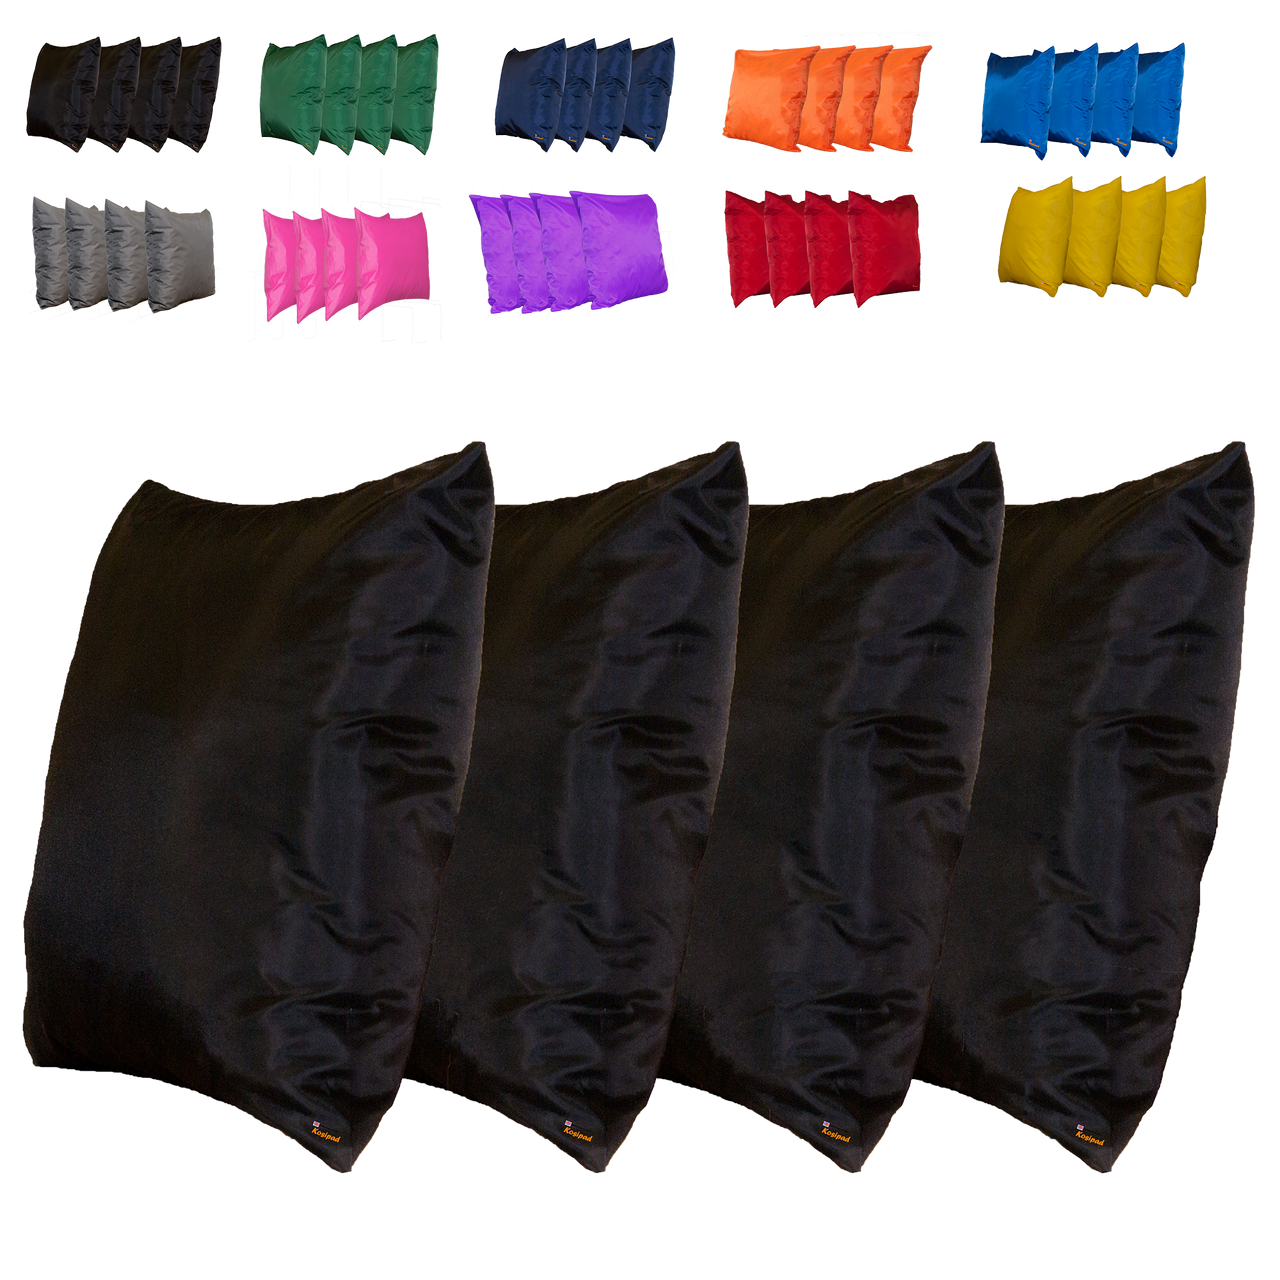 Kosipad Black Square waterproof cushions for outdoor furniture